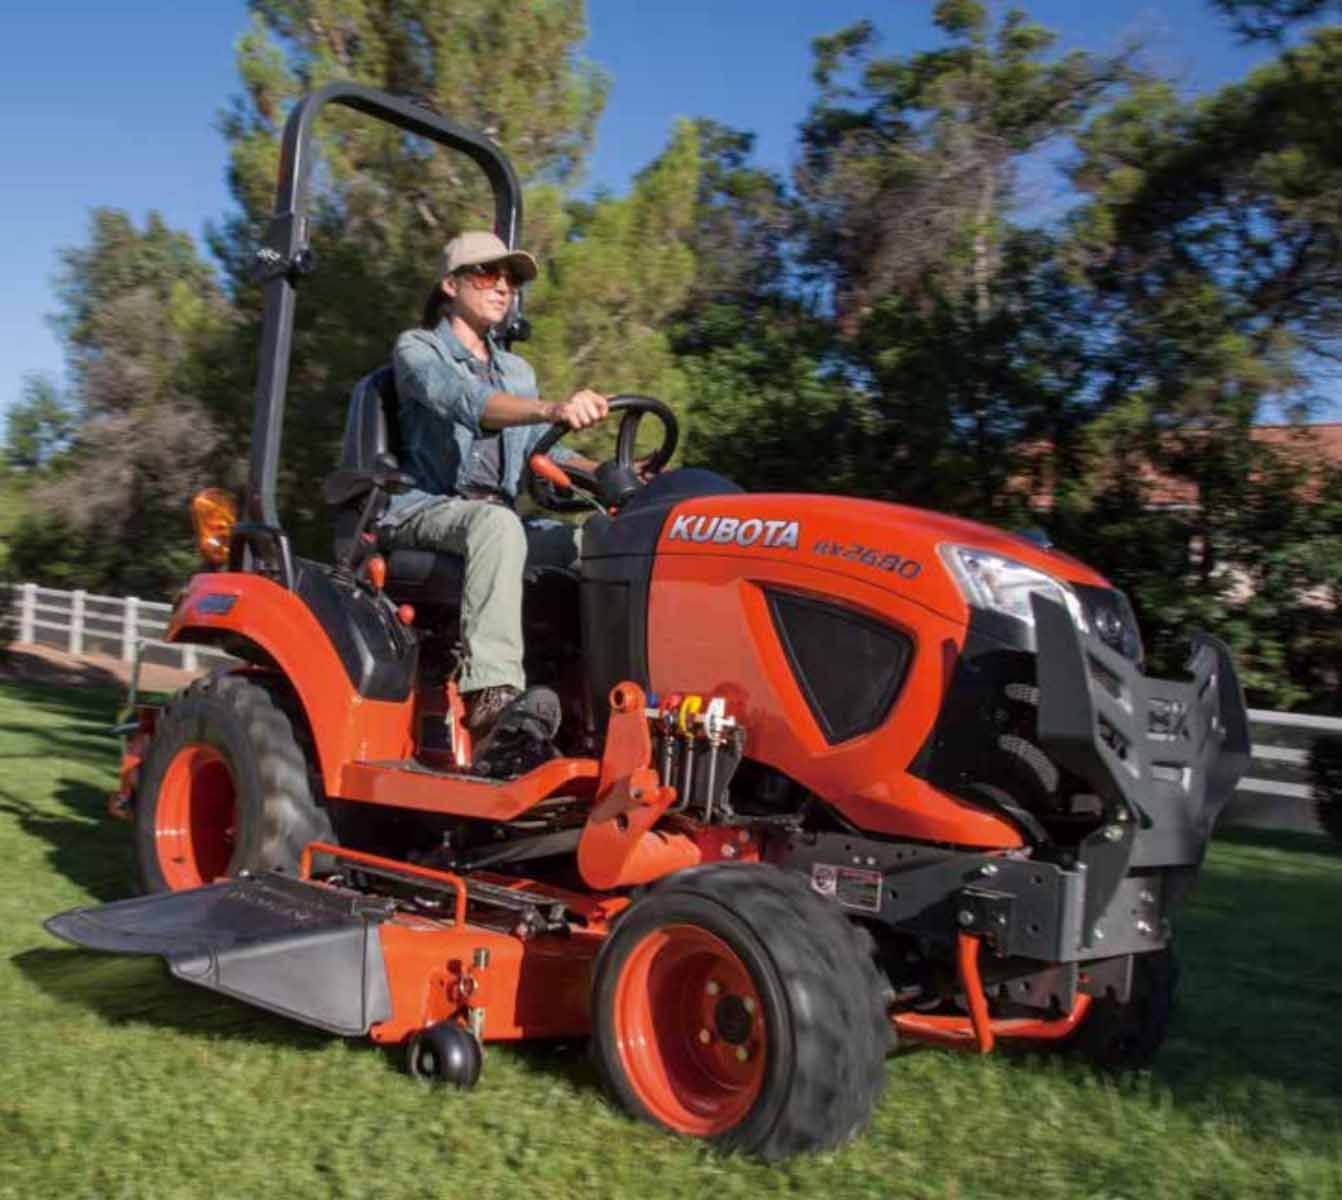 Now equipped with cruise control making it easy to mow large areas or travel long distances